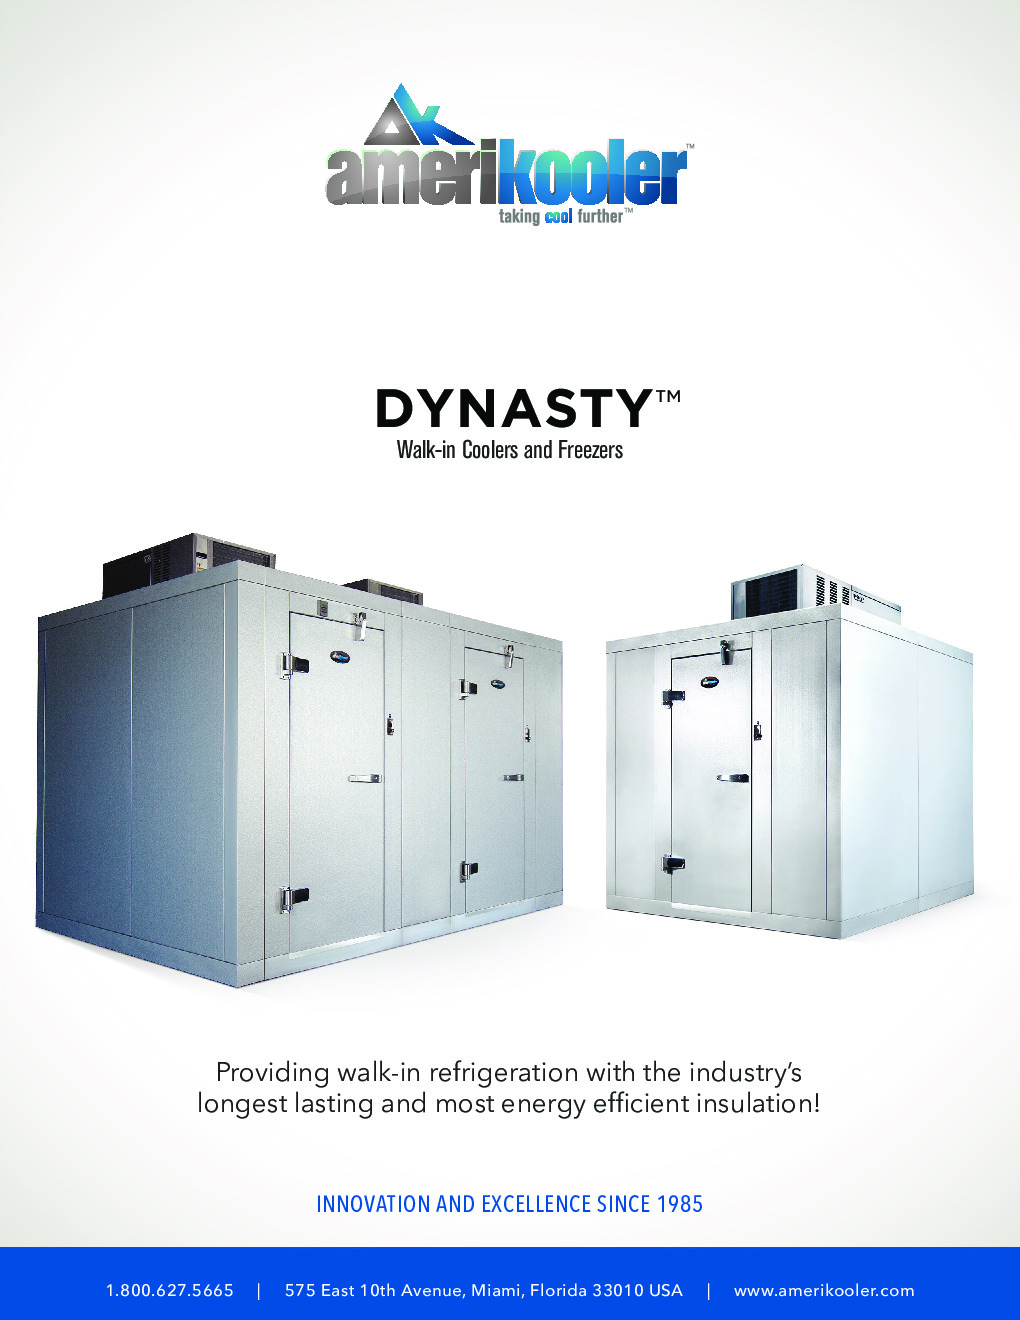 AmeriKooler DW081577N-5/10-RM 8' X 15' Walk-In Cooler, 10' L Cooler without Floor and 5' L Freezer, Remote